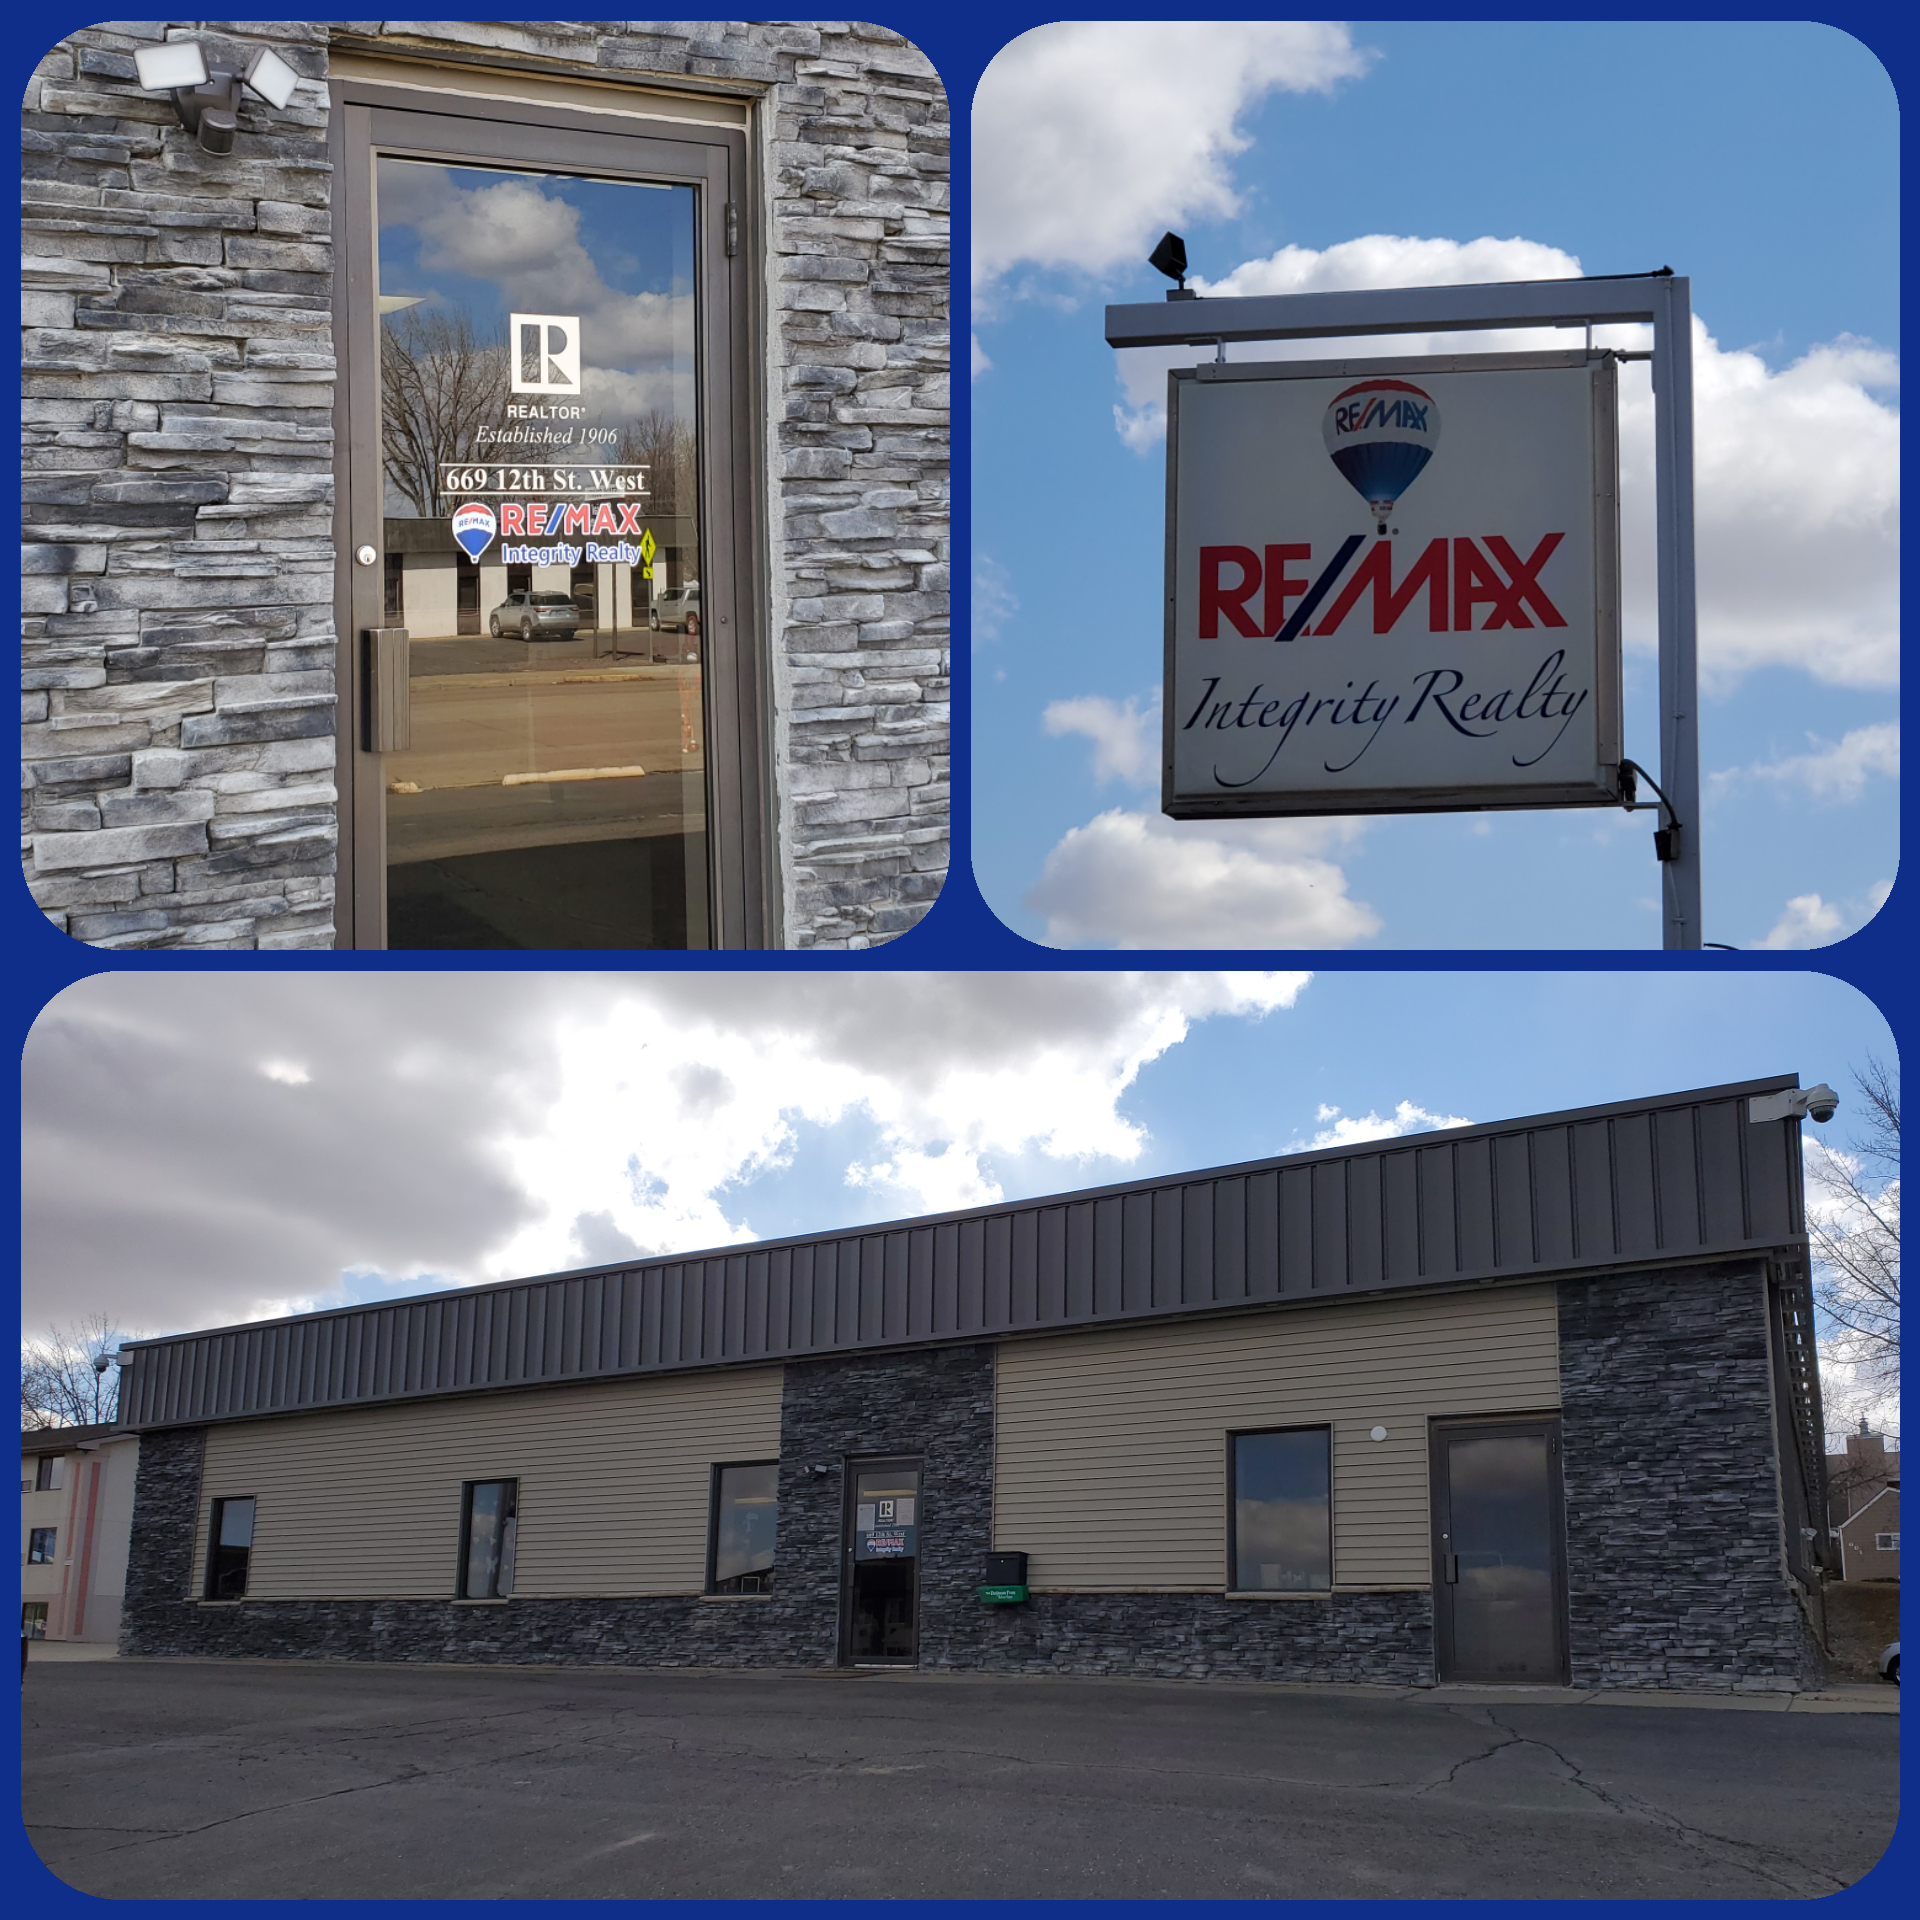 RE/MAX Integrity Realty